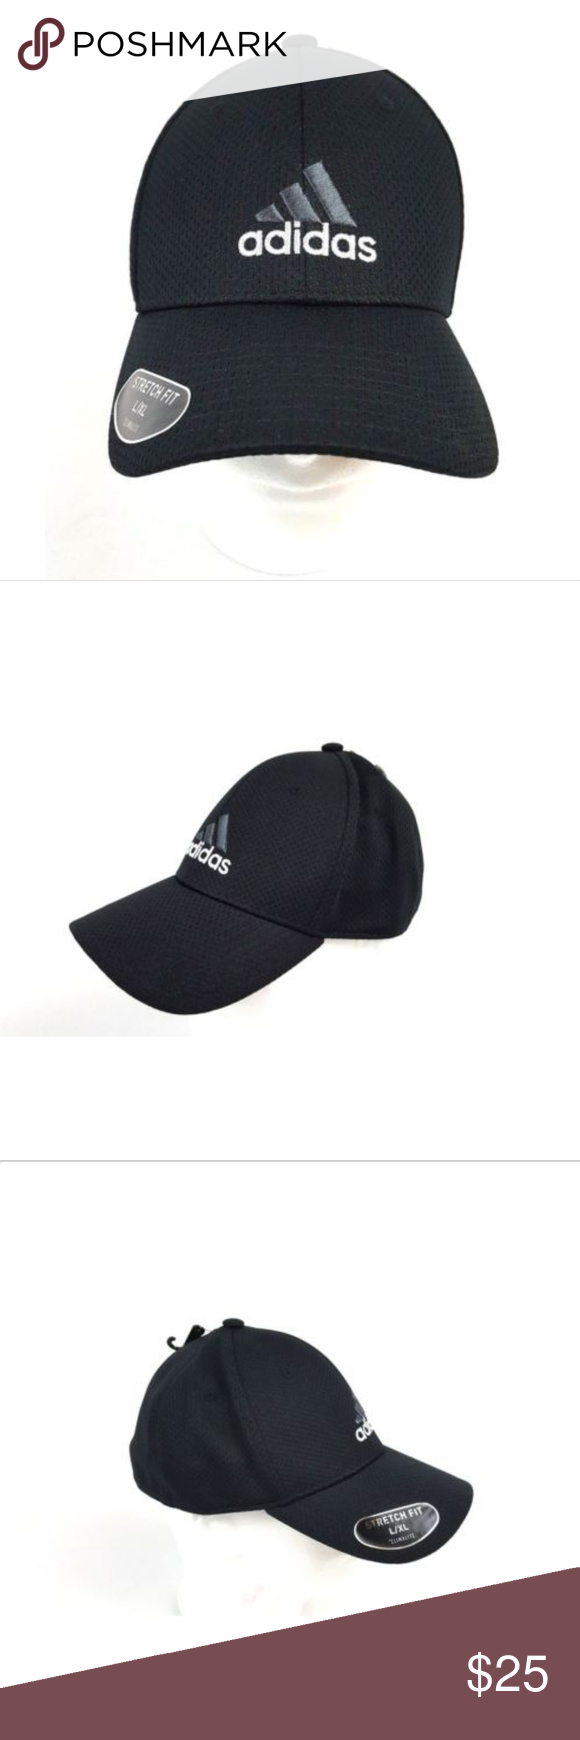 Adidas Stretch Fit Hat Cap L Xl Black Nwt Adidas Stretch Fit Hat Cap L Xl Black Nwt Men Or Women Condition New With Tags Fitted Hats Black Fashion Fashion